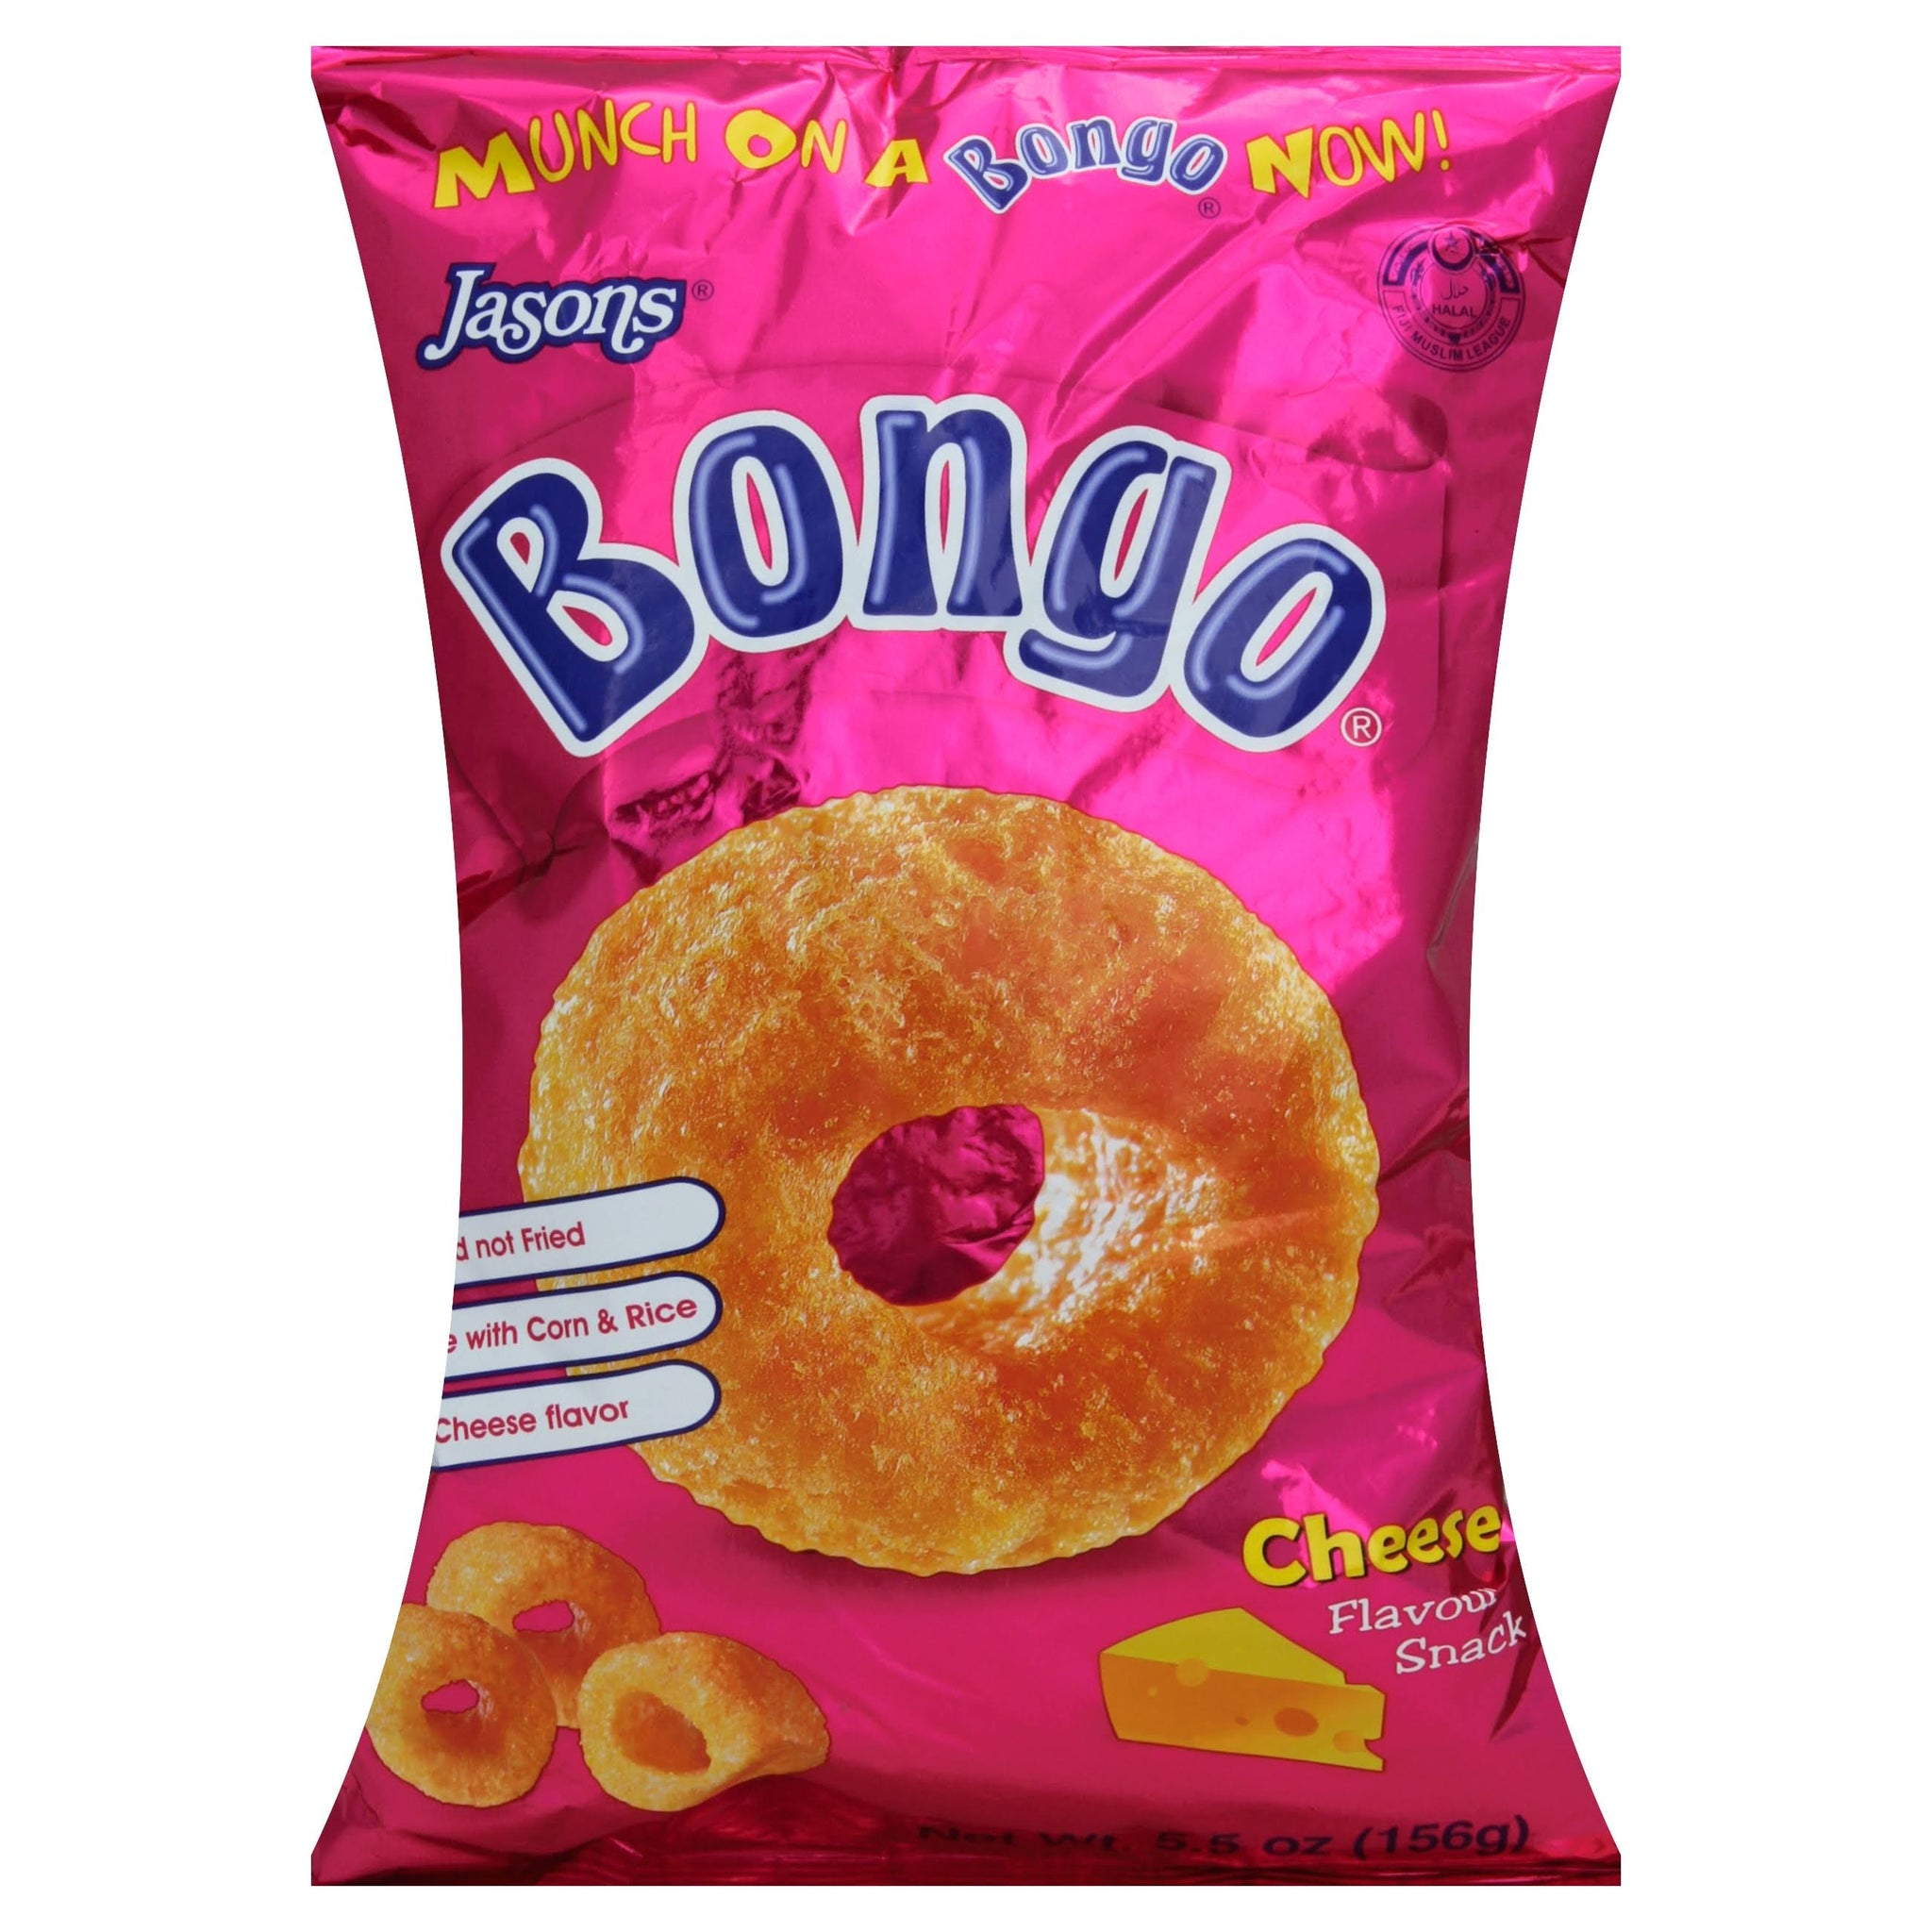 Bongo Natural Cheddar Cheese Flavored Baked Puffs 5.5oz